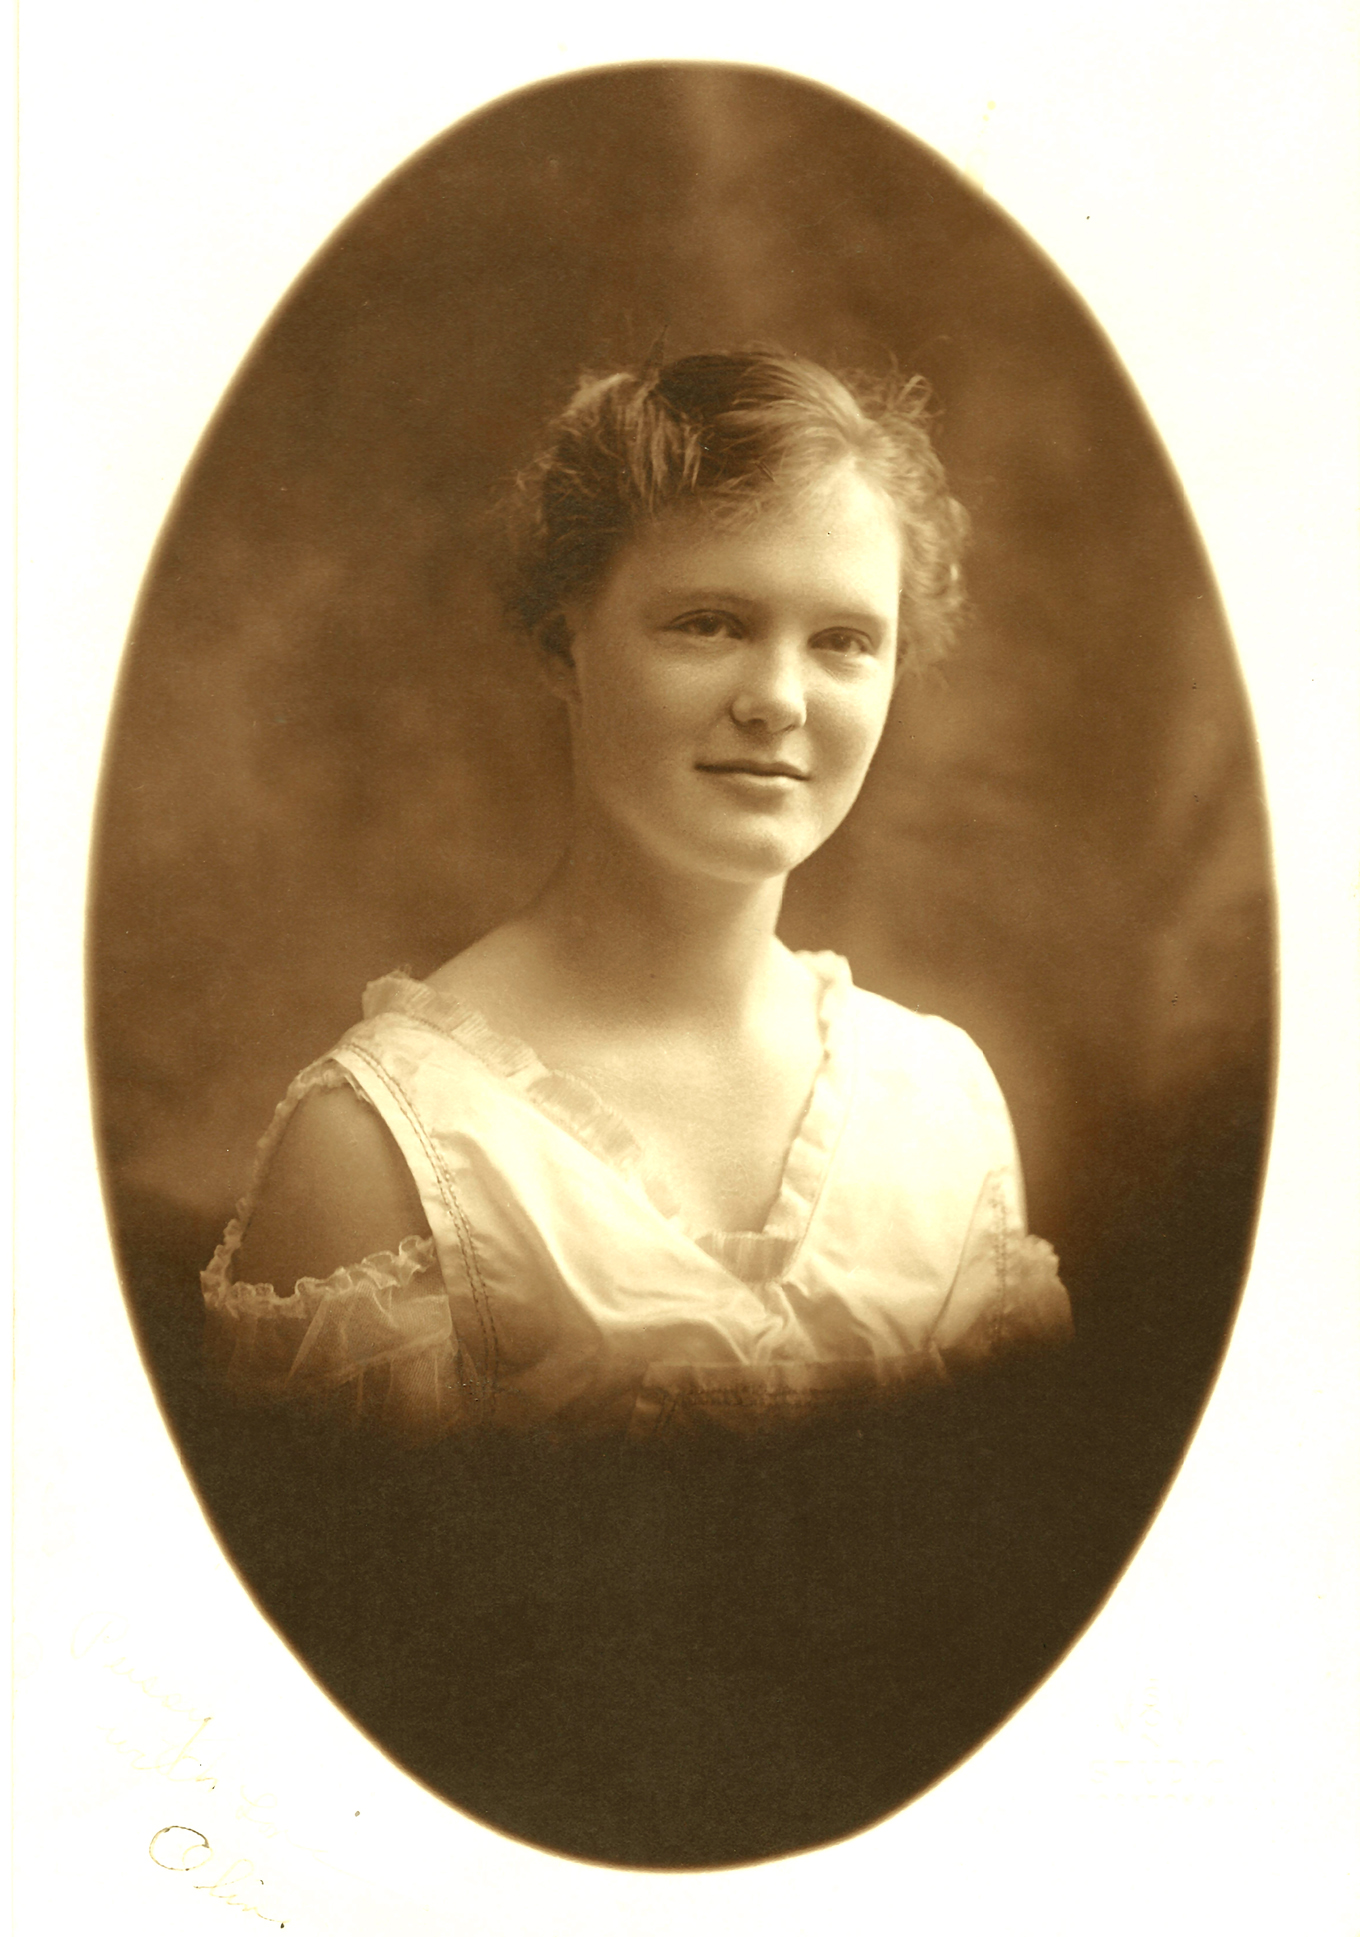 Figure 1 – Miss Olive Lewis of Pepperell, Massachusetts, photograph taken at the Wilson Studios in Brockton, MA in 1916-17.